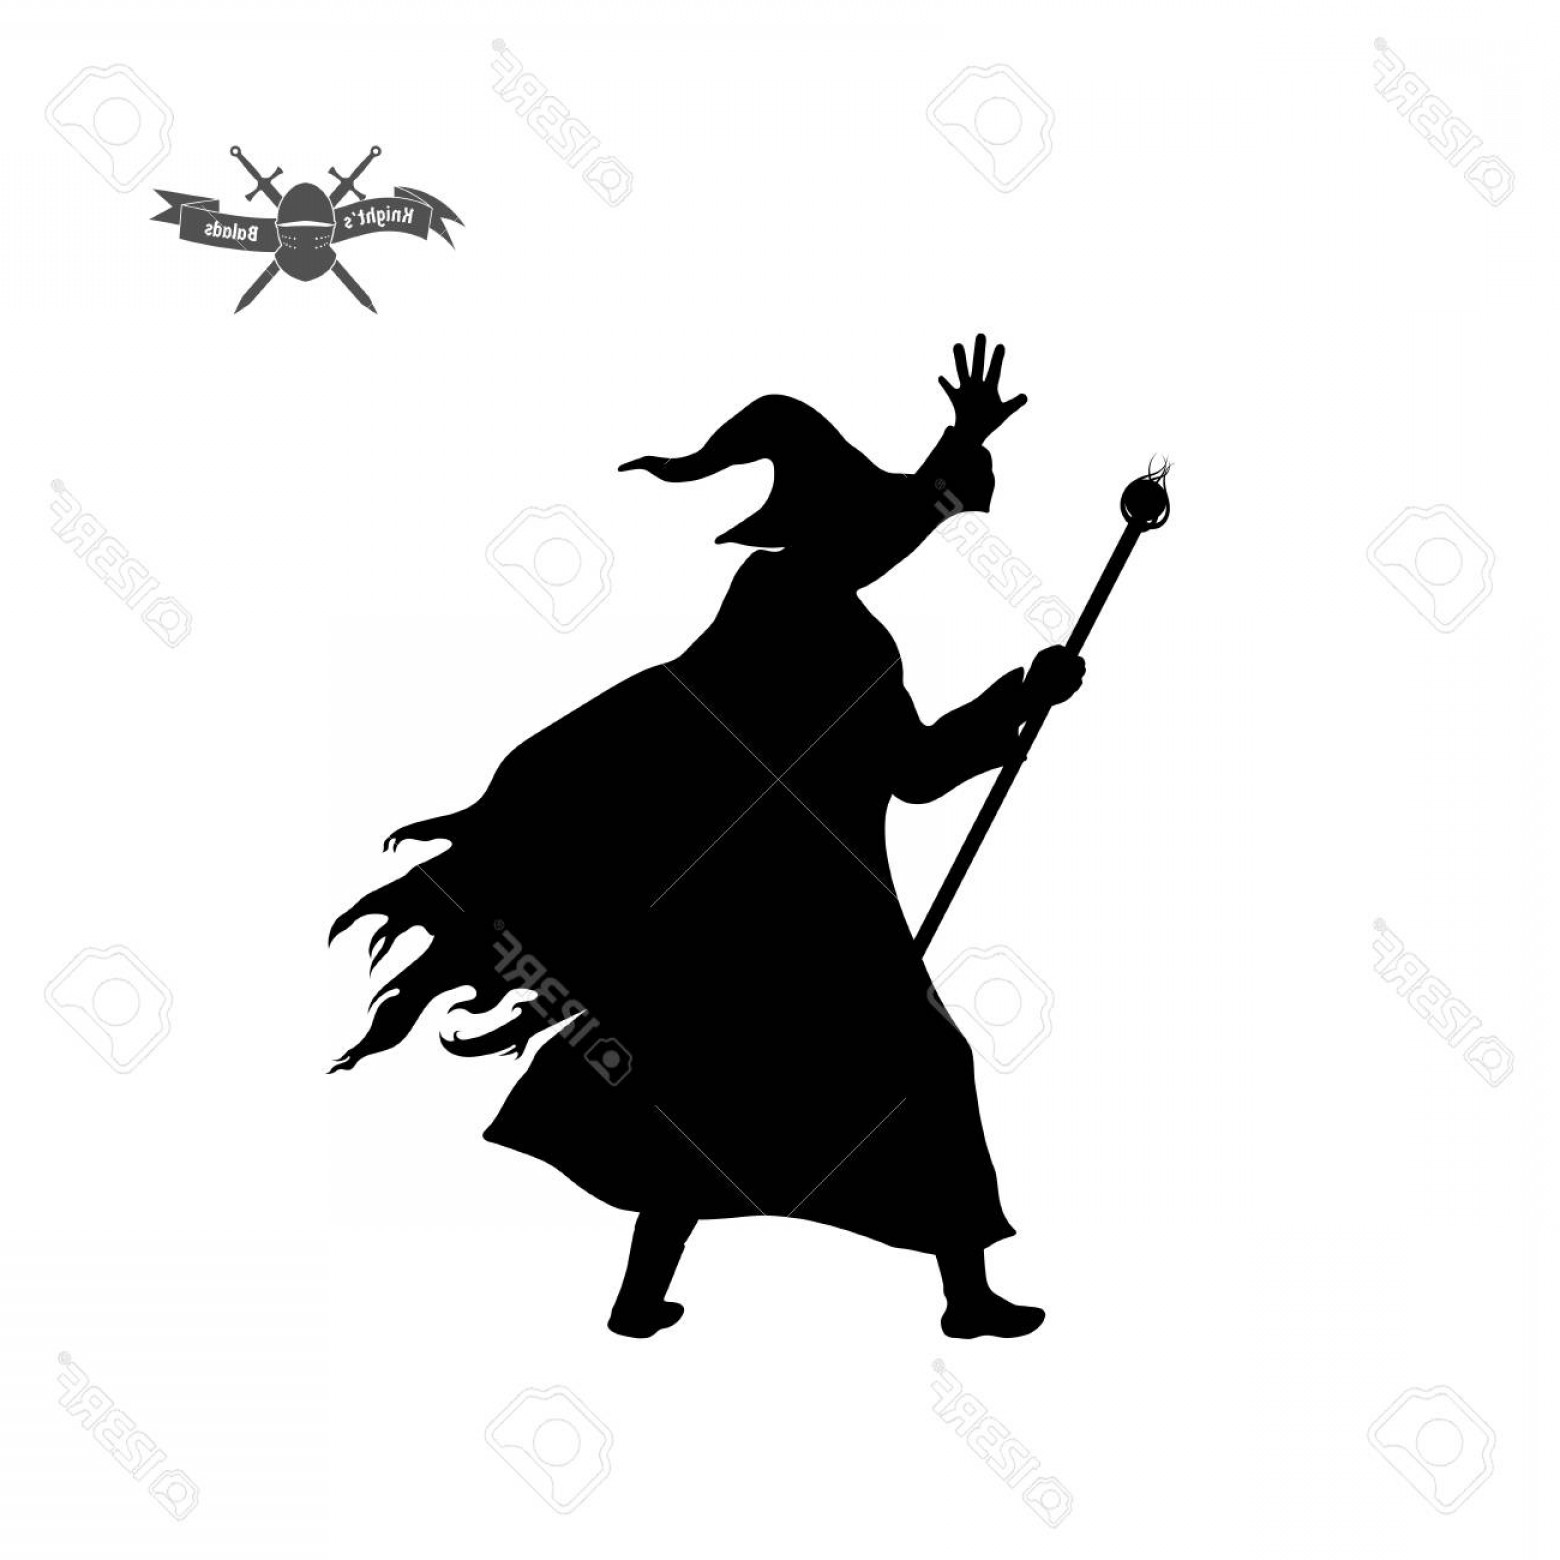 Wizard Silhouette Vector: Photostock Vector Black Silhouette Of Wizard With Hat And Staff Vector Illustration